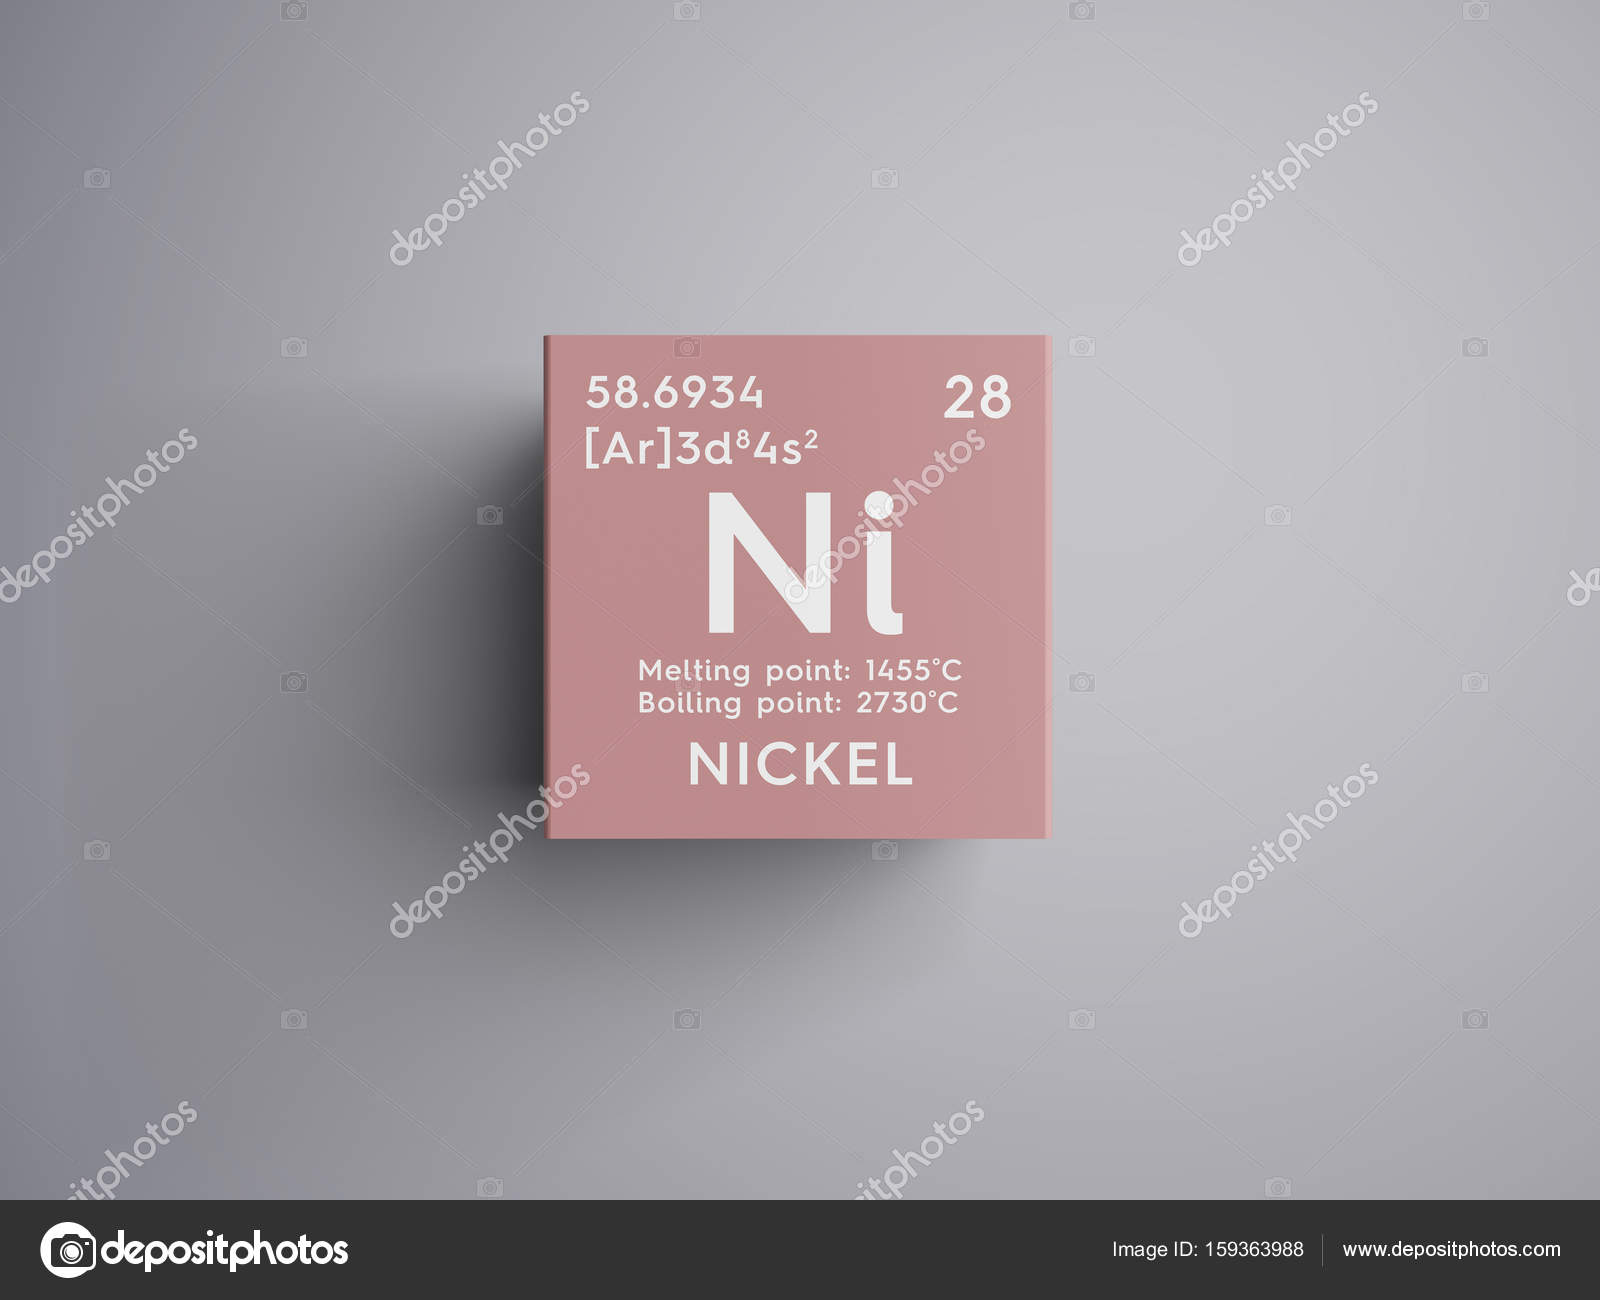 Nickel transition metals chemical element of mendeleevs periodic nickel transition metals chemical element of mendeleevs periodic table nickel in square cube creative concept photo by sanches812 buycottarizona Images